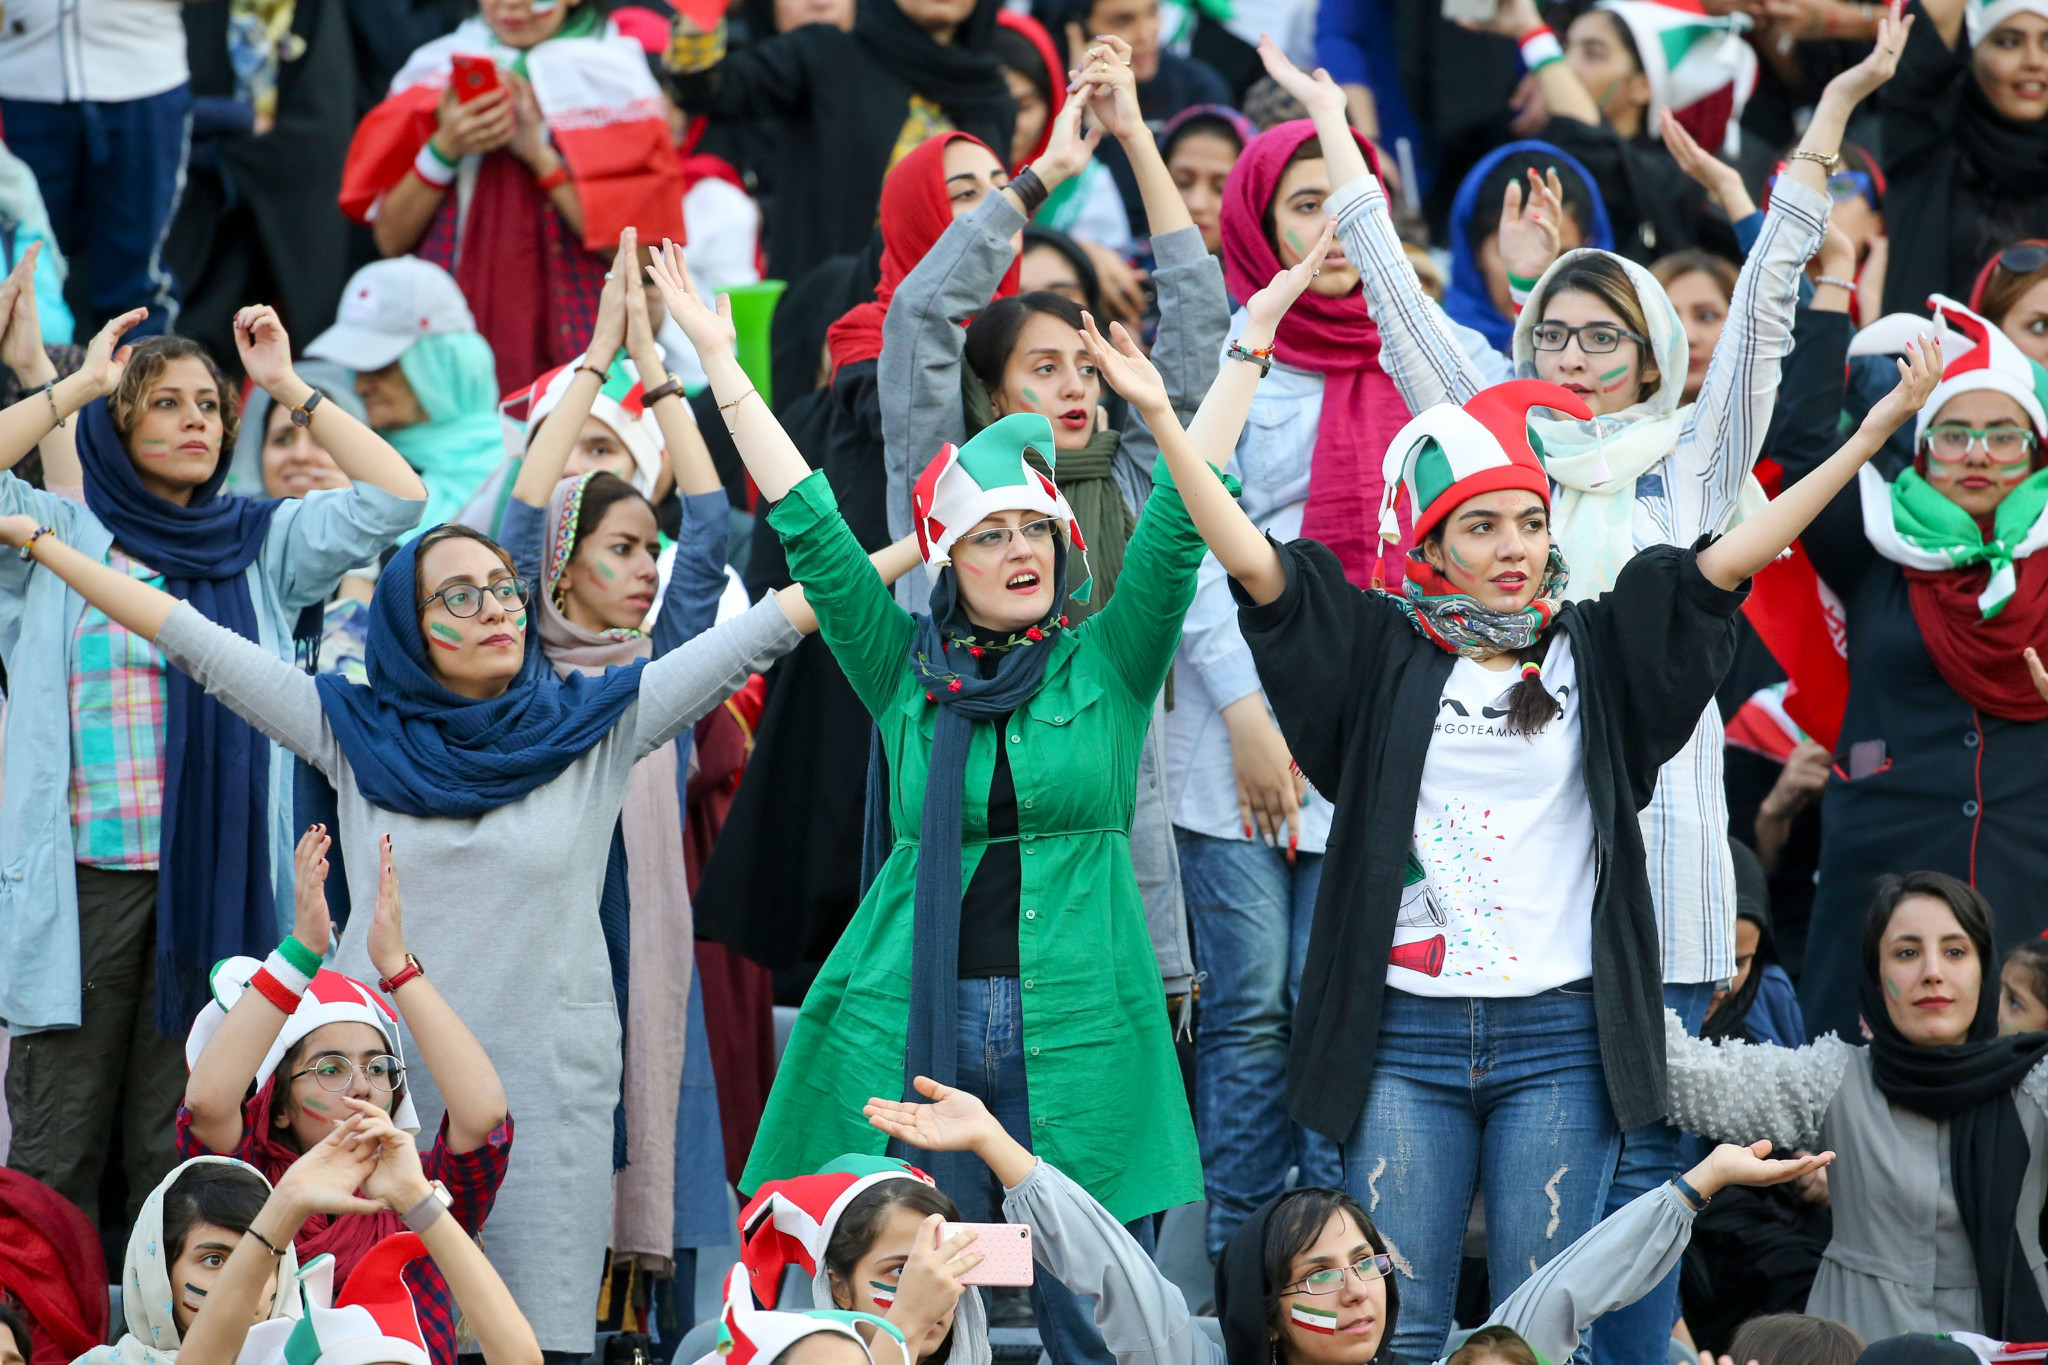 Iranian women cheer on the men's national team at Azadi Stadium in Tehran ©Getty Images